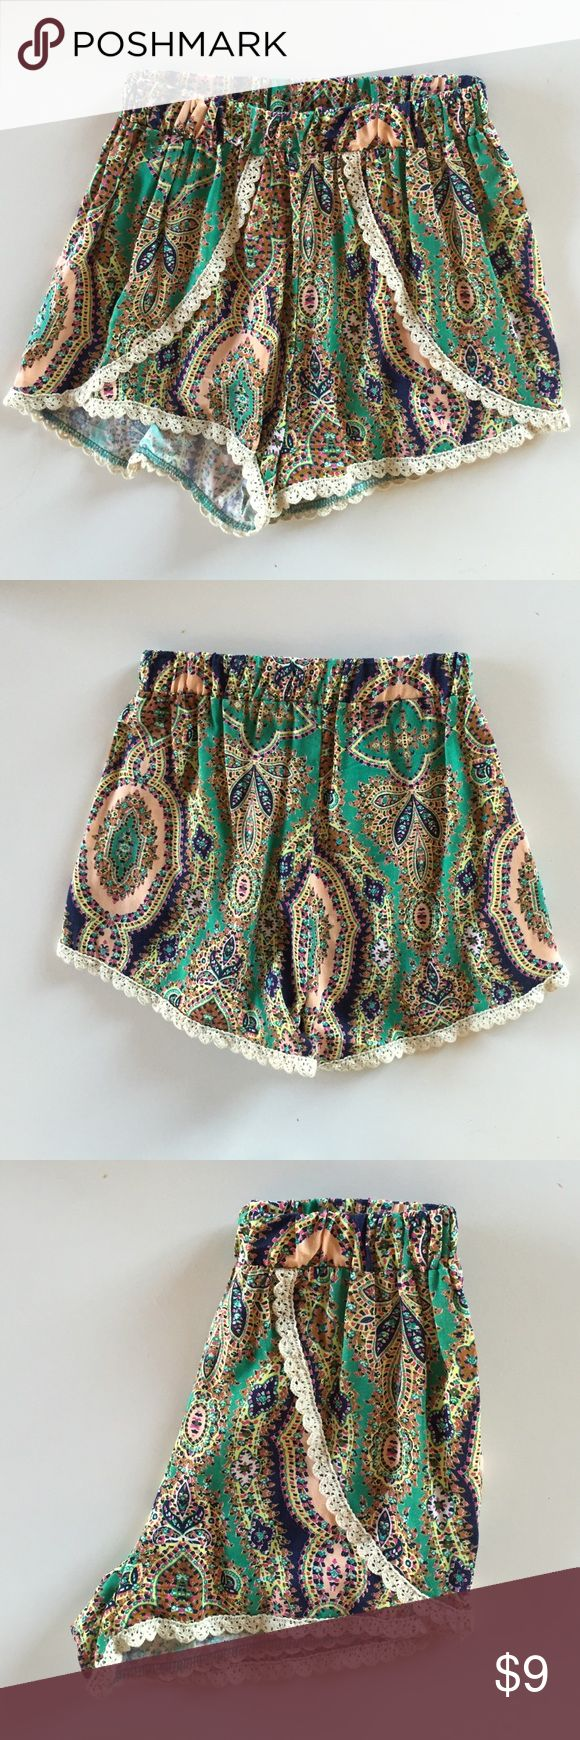 手机壳定制high tops for women size  Charlotte Russe Crochet Trim Boho Shorts Adorable pair of flowy shorts in a funky pattern with a scalloped crochet trim Semi high rise with elastic waist band Perfect for summer In very good condition worn maybe twice Measure   inches long Inseam is   inches Waist laid flat is  inches unstretched  Charlotte Russe Shorts